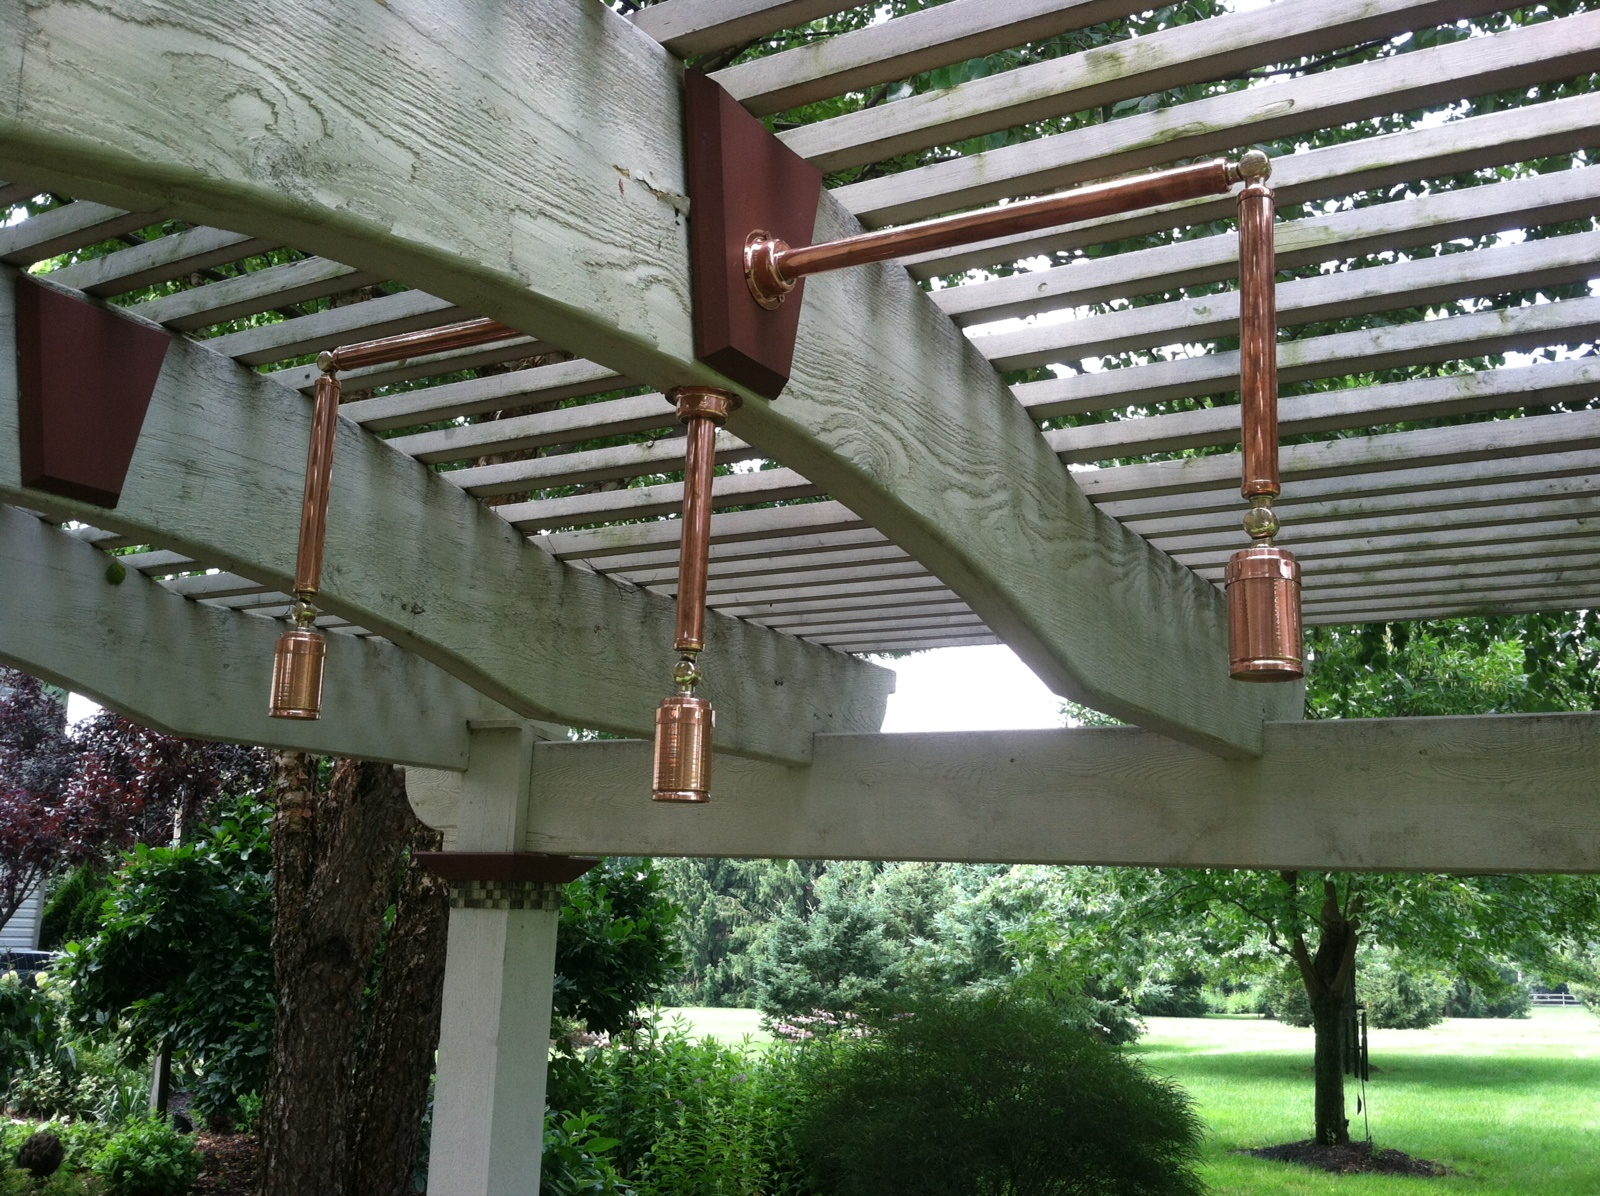 Custom pergola lighting Northern Ohio. Take a look at this stunning pergola lighting. Not only was the lighting design custom for these Northern Ohio area homeowners, but we also had the genuine copper fixtures custom made.